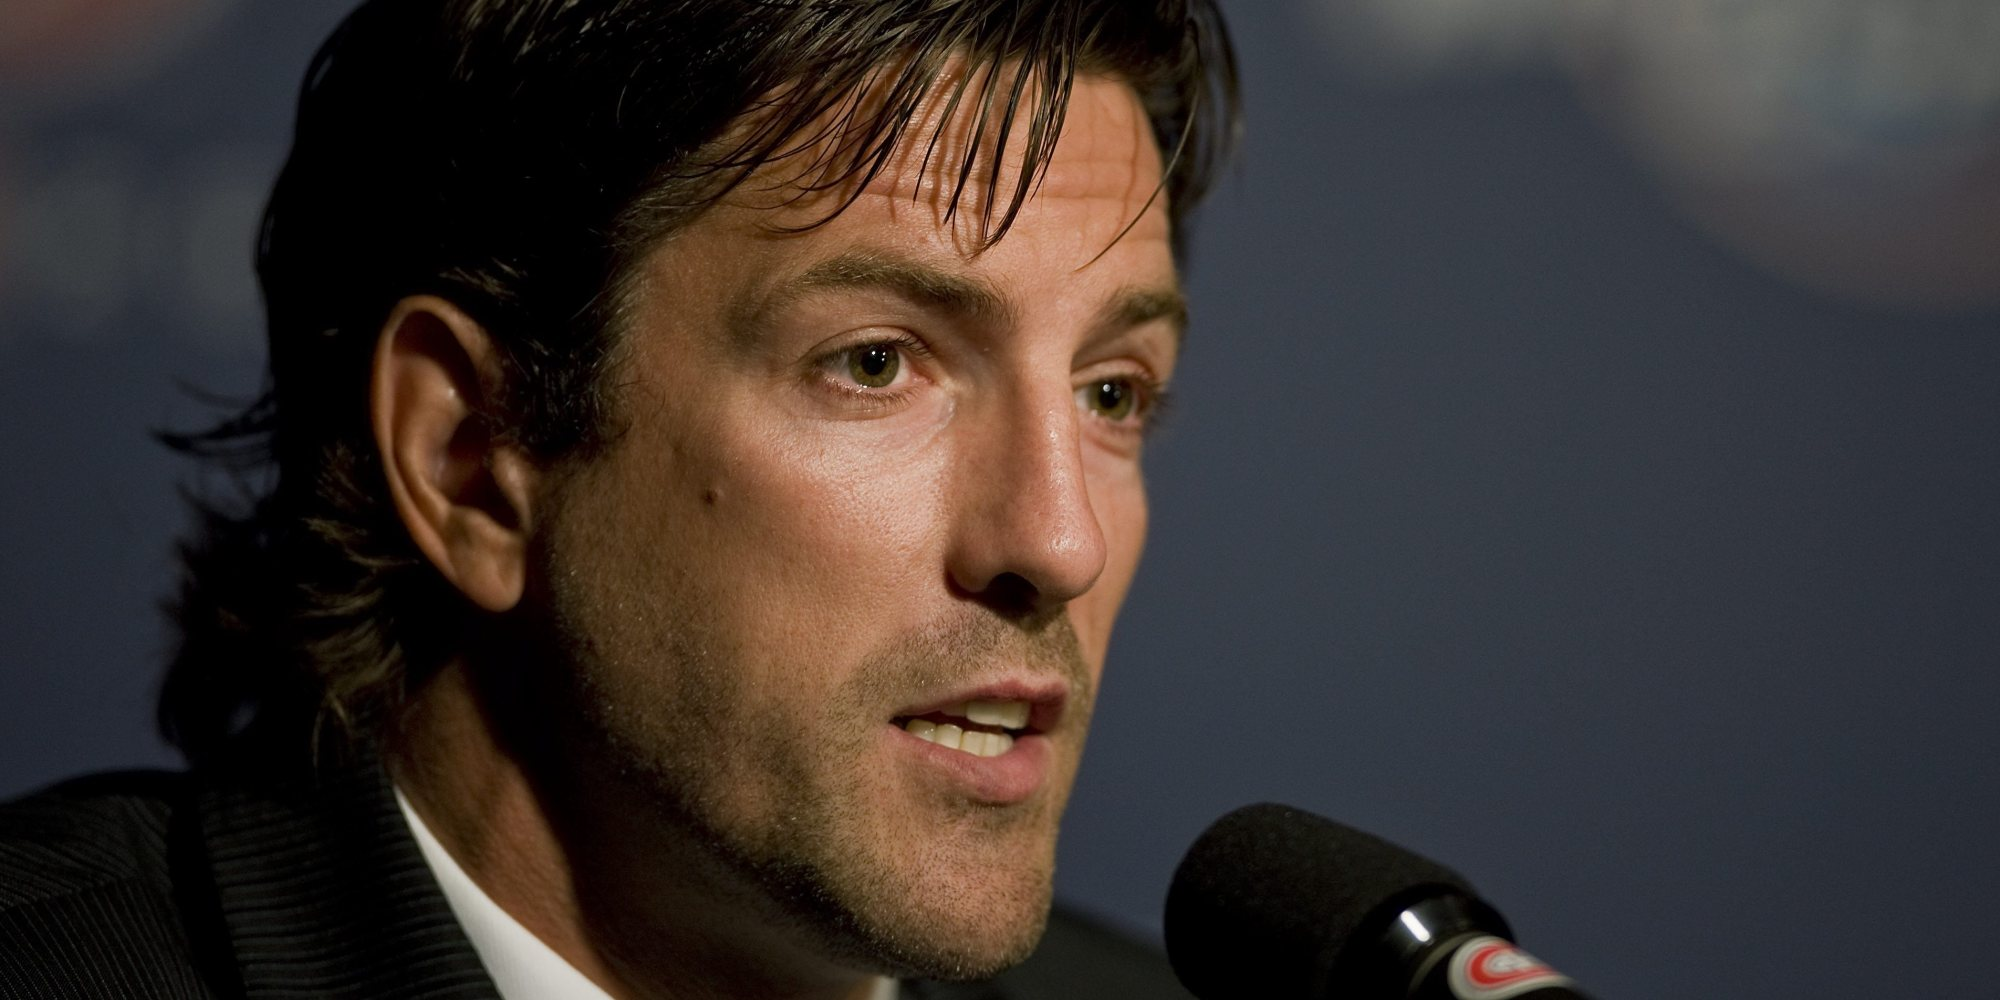 patrice brisebois net worth